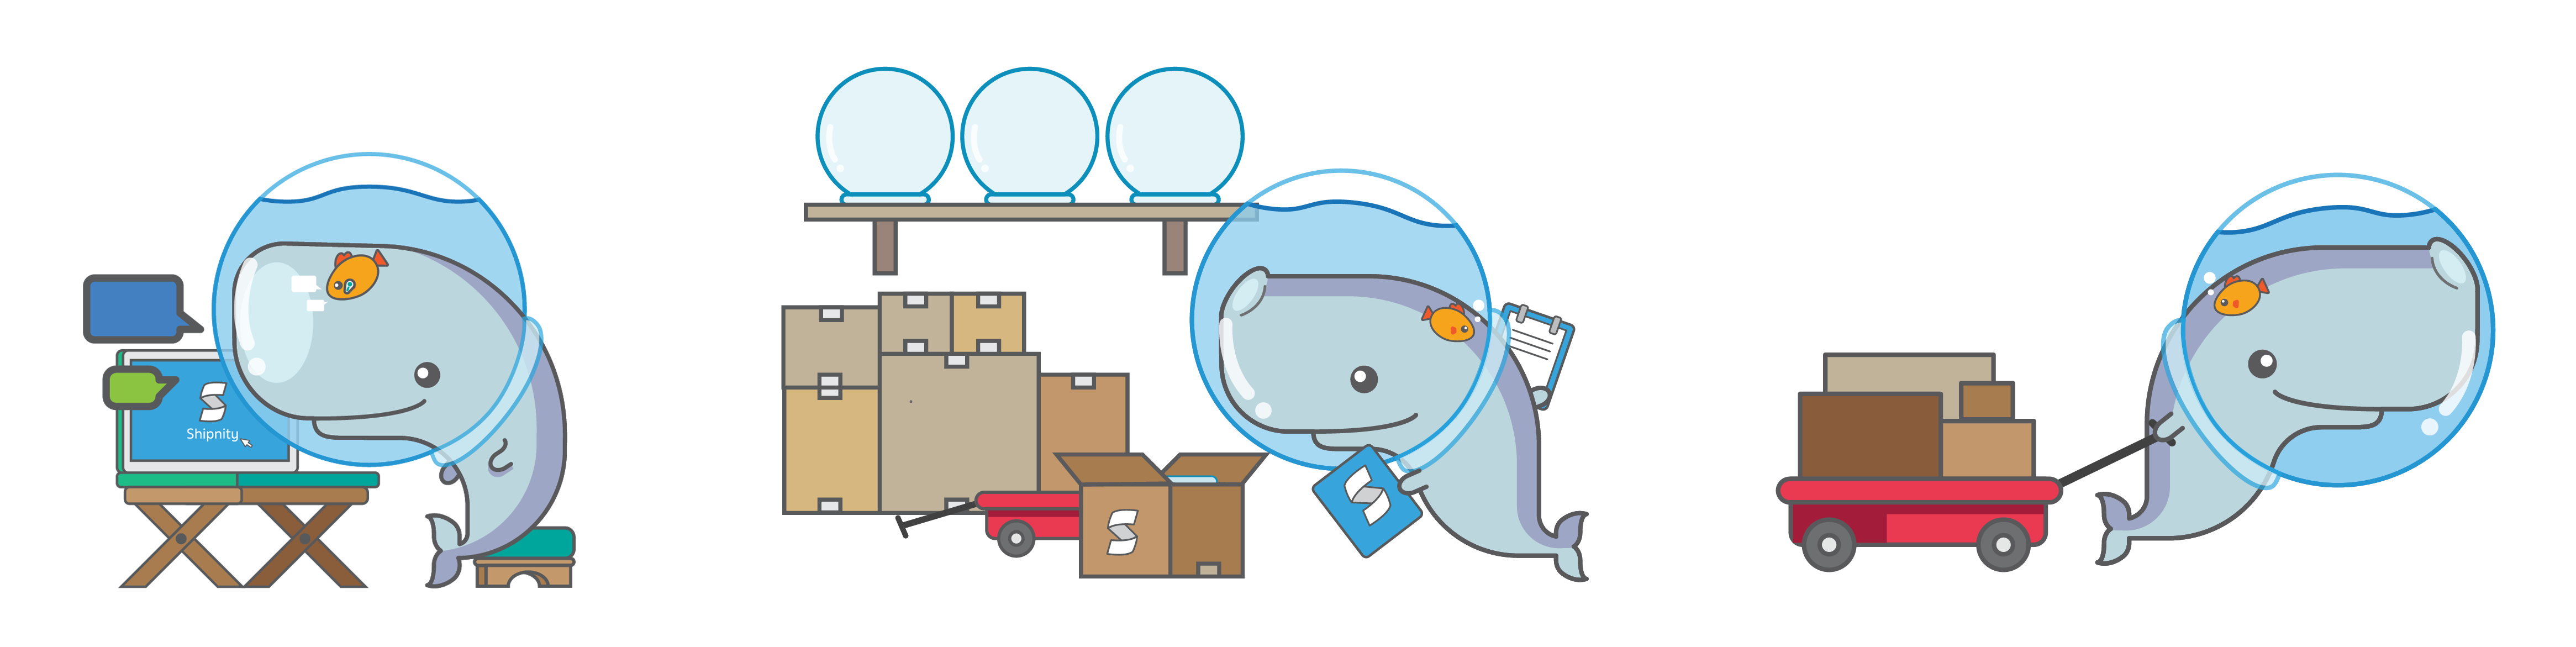 Landing page whale2